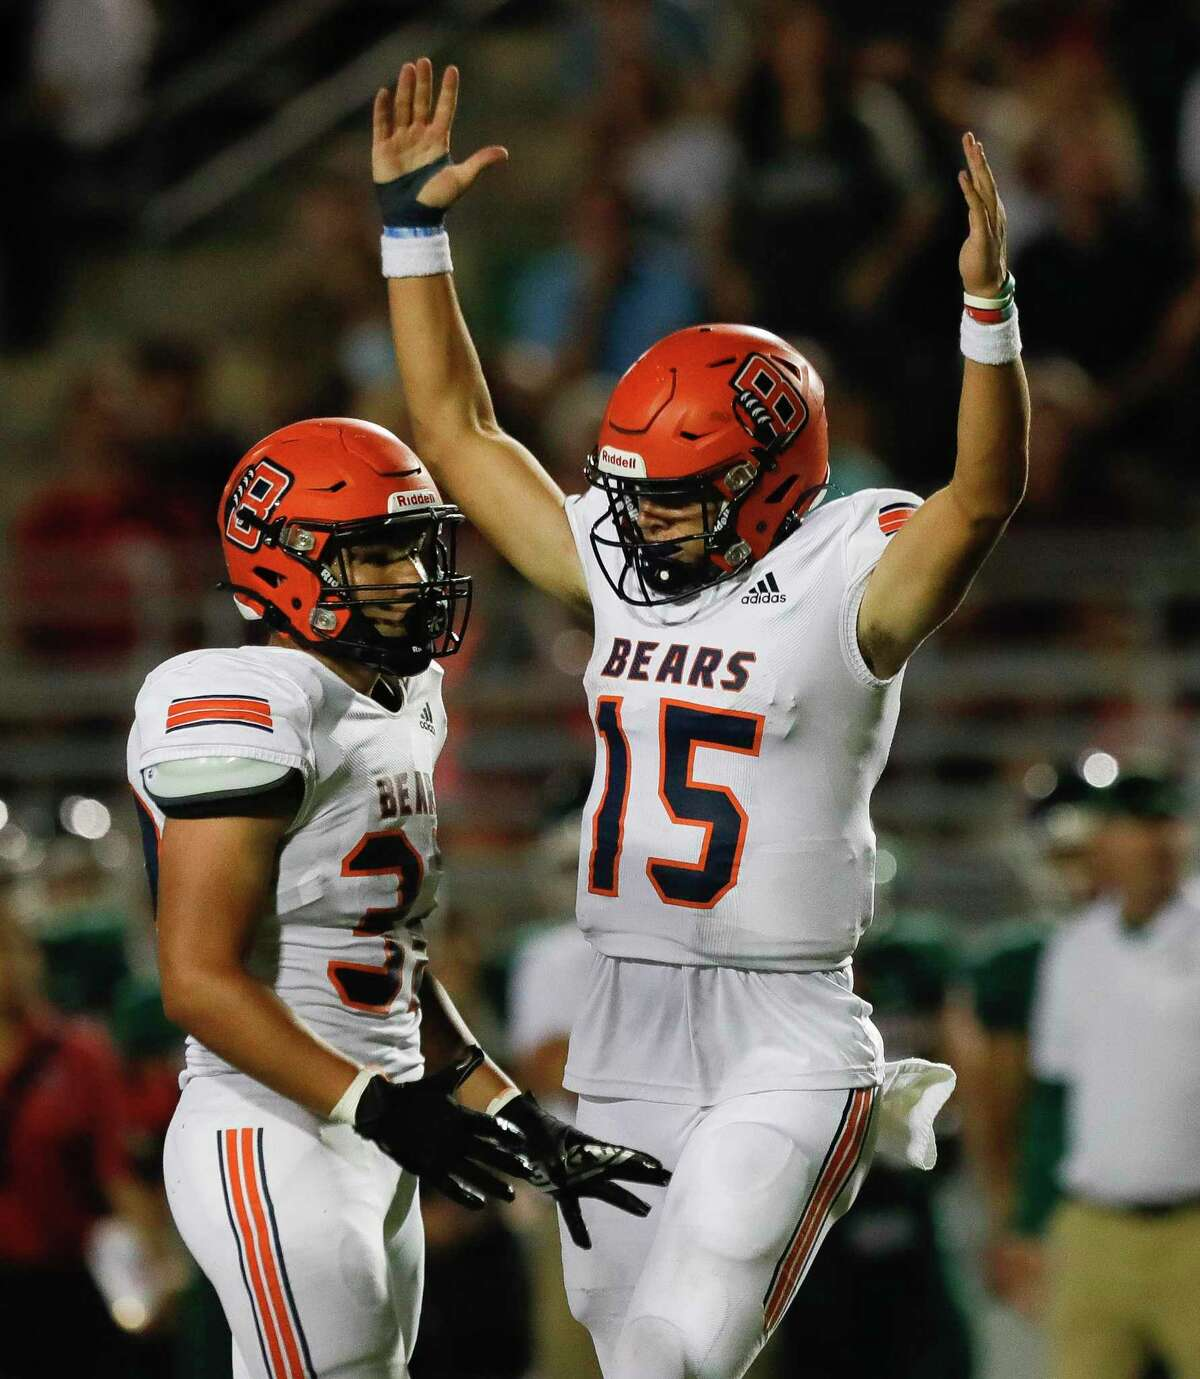 Bridgeland quarterback Conner Weigman (15) reacts after throwing a 12-yard touchdown to wide receiver Andrew Maleski during the third quarter of a non-district high school football game at Woodforest Bank Stadium, Friday, Sept. 10, 2021, in Shenandoah.